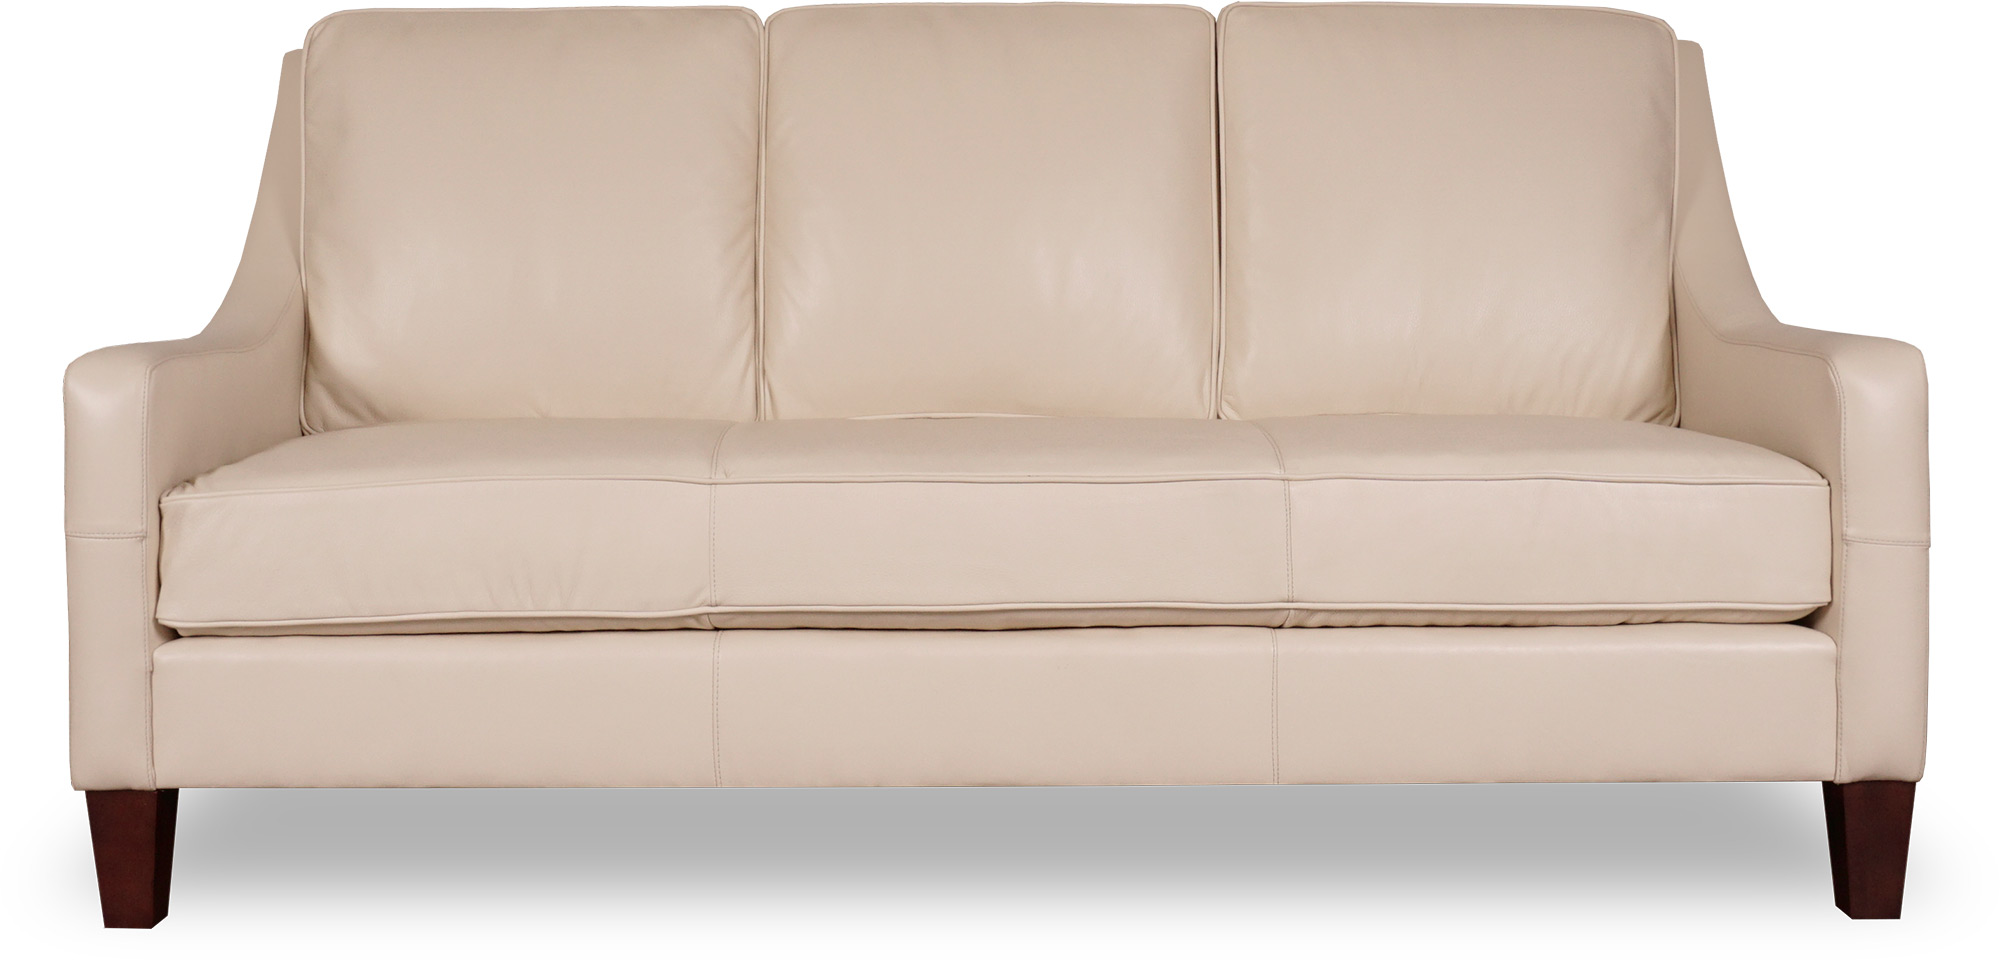 Gracie Mid Century Sofas Armchairs And Sectionals Roger